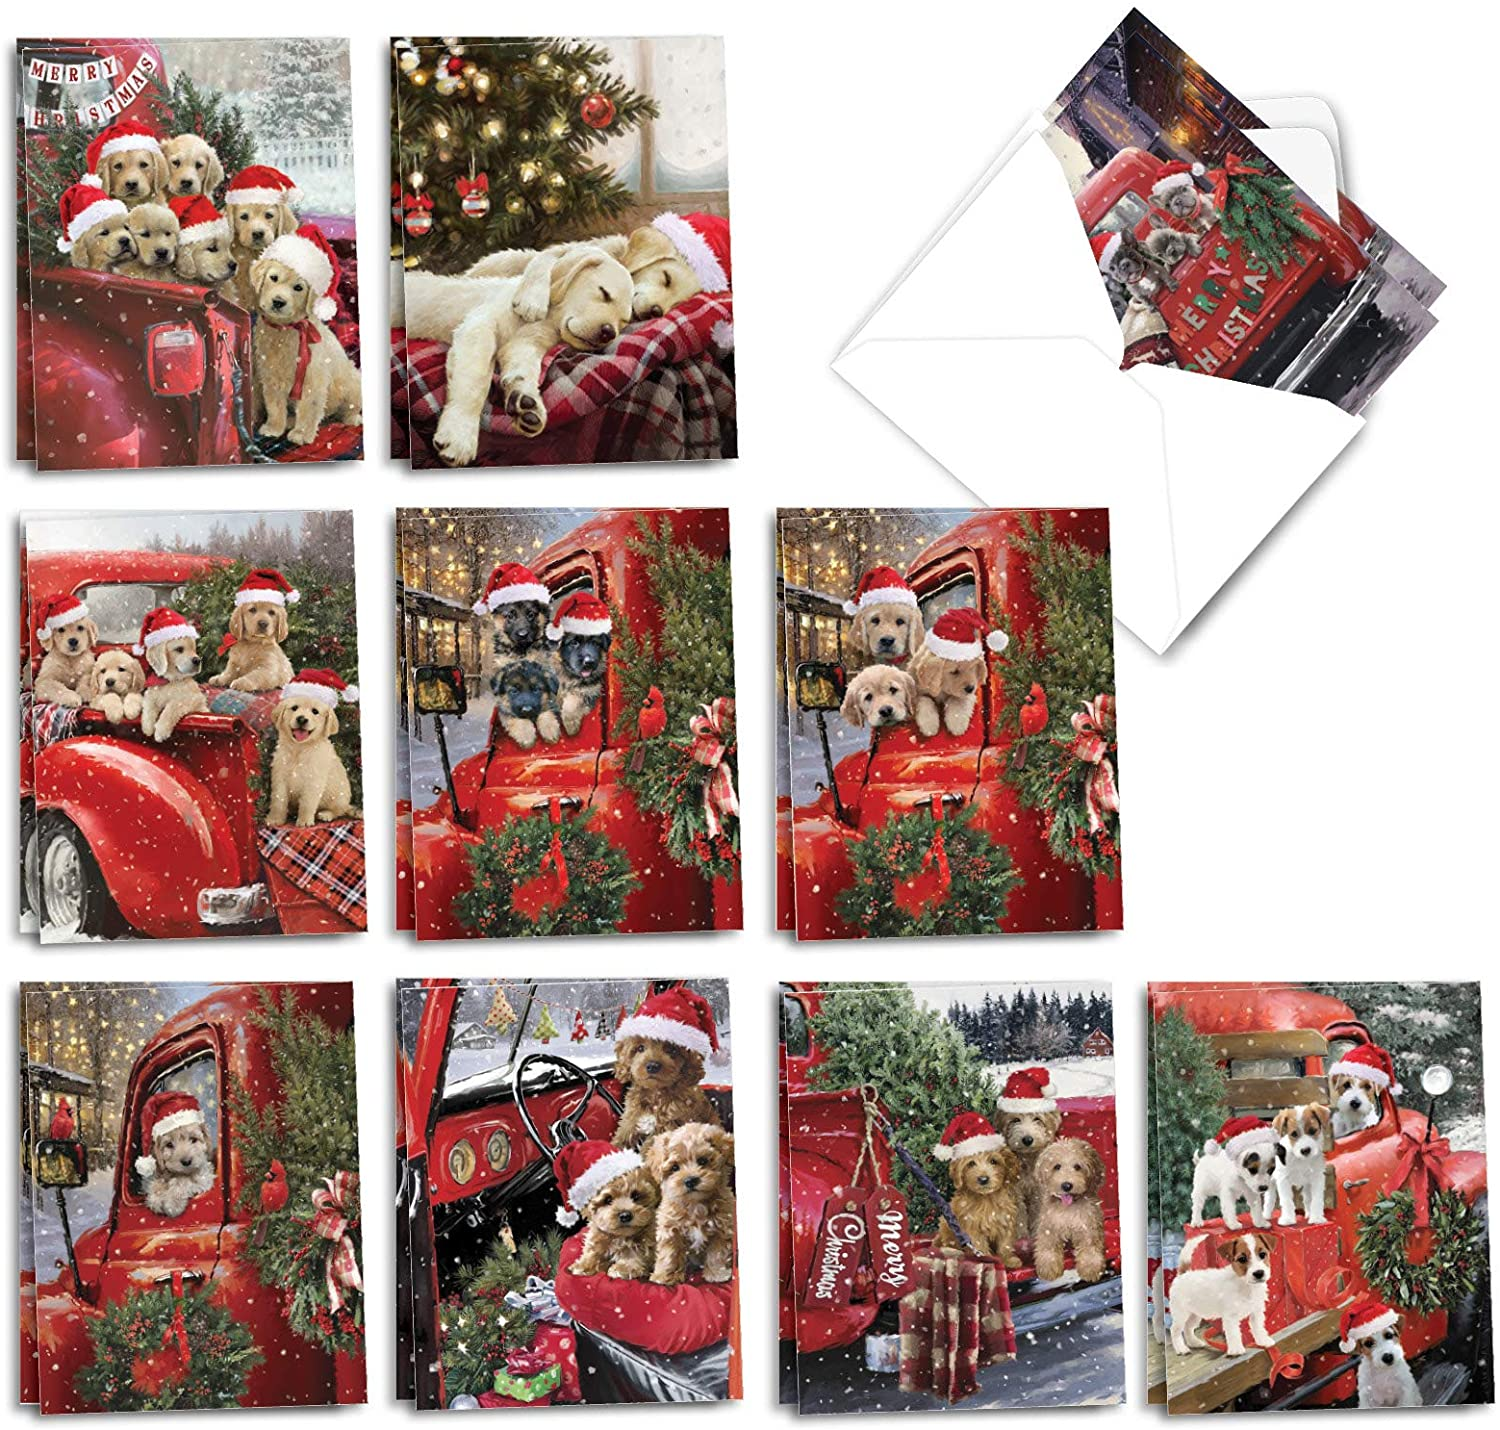 The Best Card Company Red Truck Puppies - 20 Assorted Boxed Merry Christmas Note Cards with Envelopes (4 x 5.12 Inch) - Holiday Pickups Pups AM3375XSG-B2x10